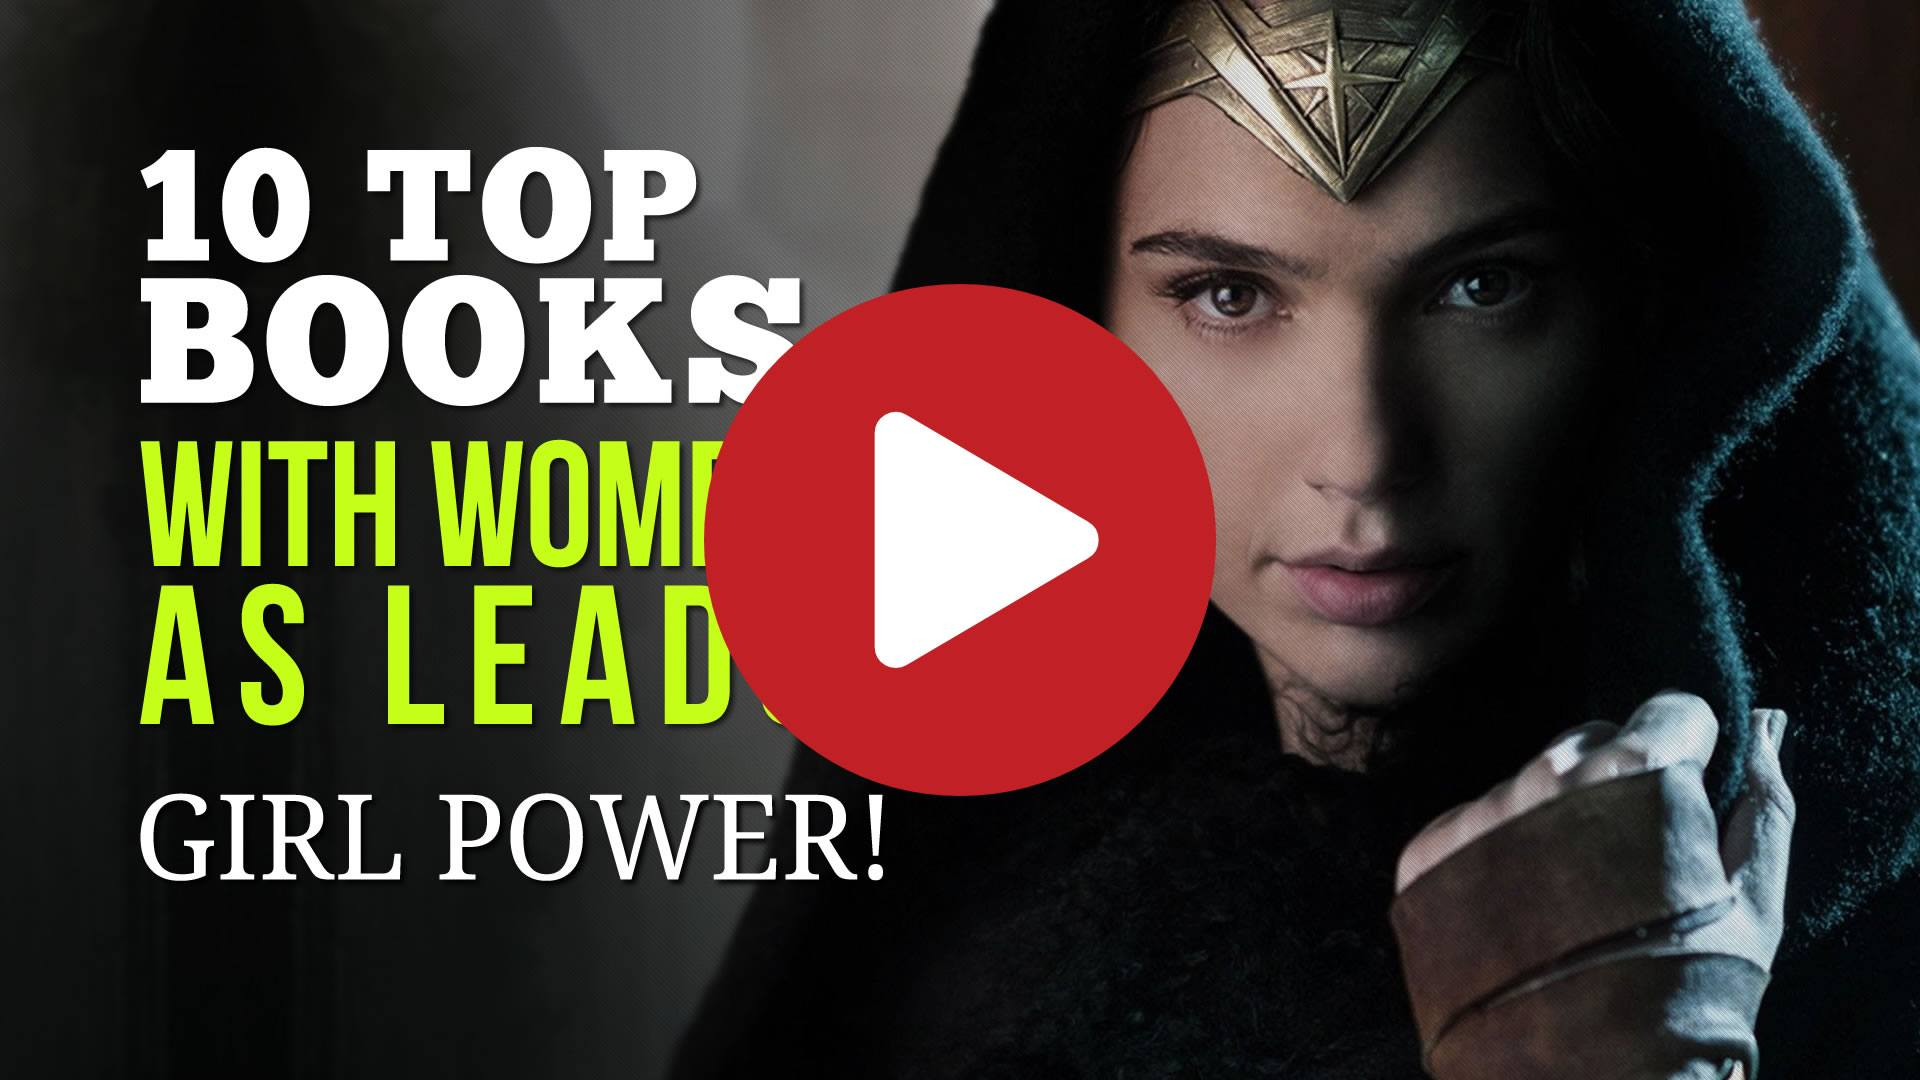 10 Top Books with Women as Leads - Amazing Stories with Girl Power!